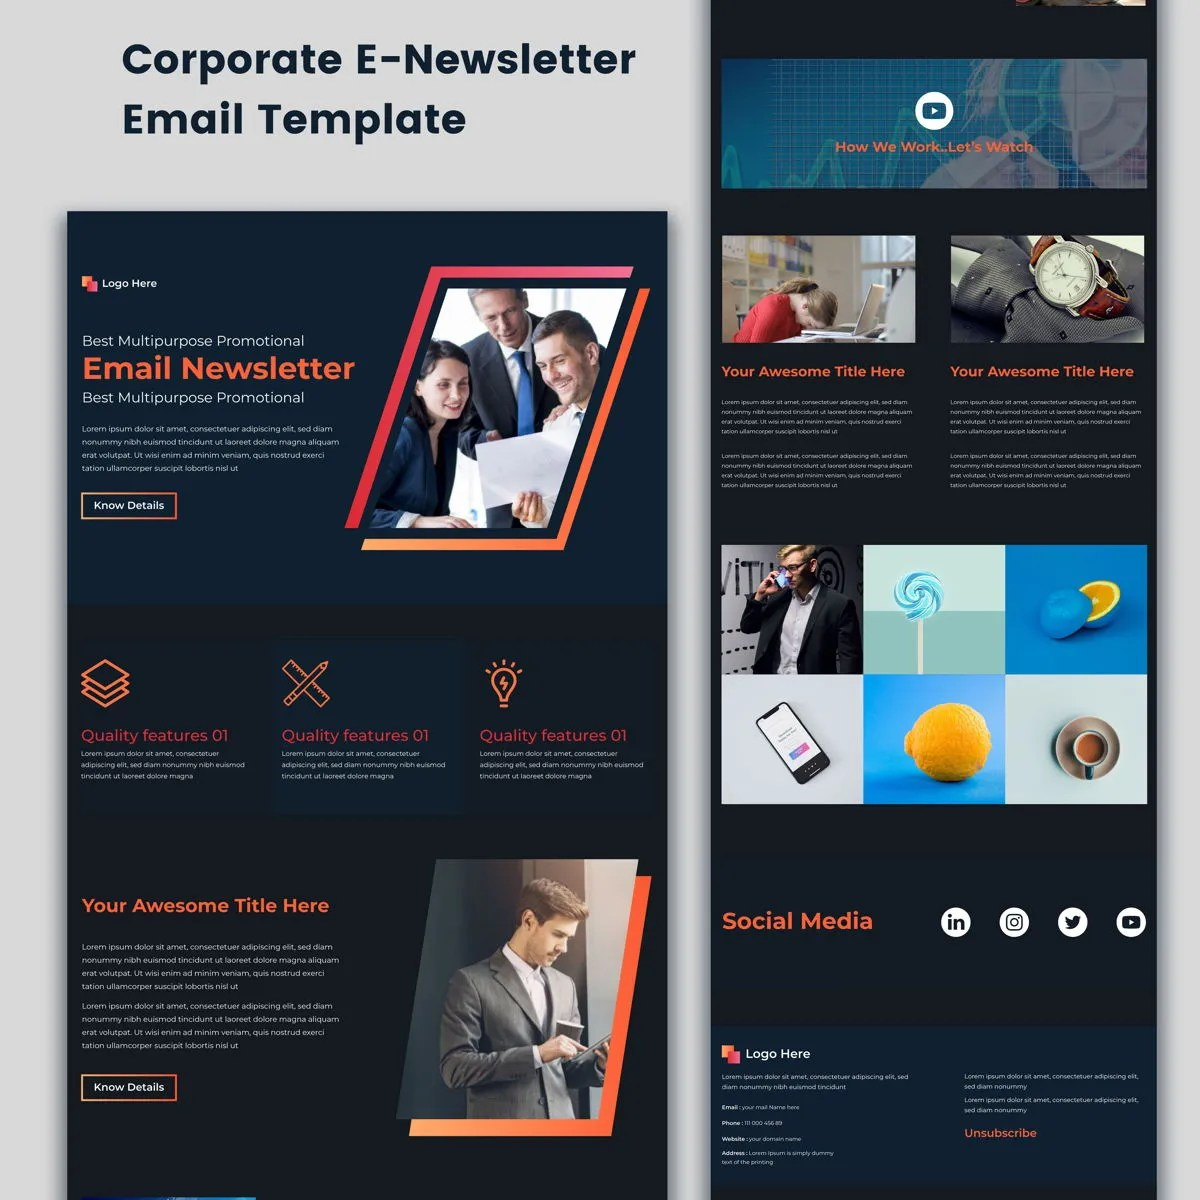 Red and blue modern corporate startup email newsletter. Multipurpose Corporate E Newsletter Email Template Buletin Mdimranmollah Poweredtemplate Com